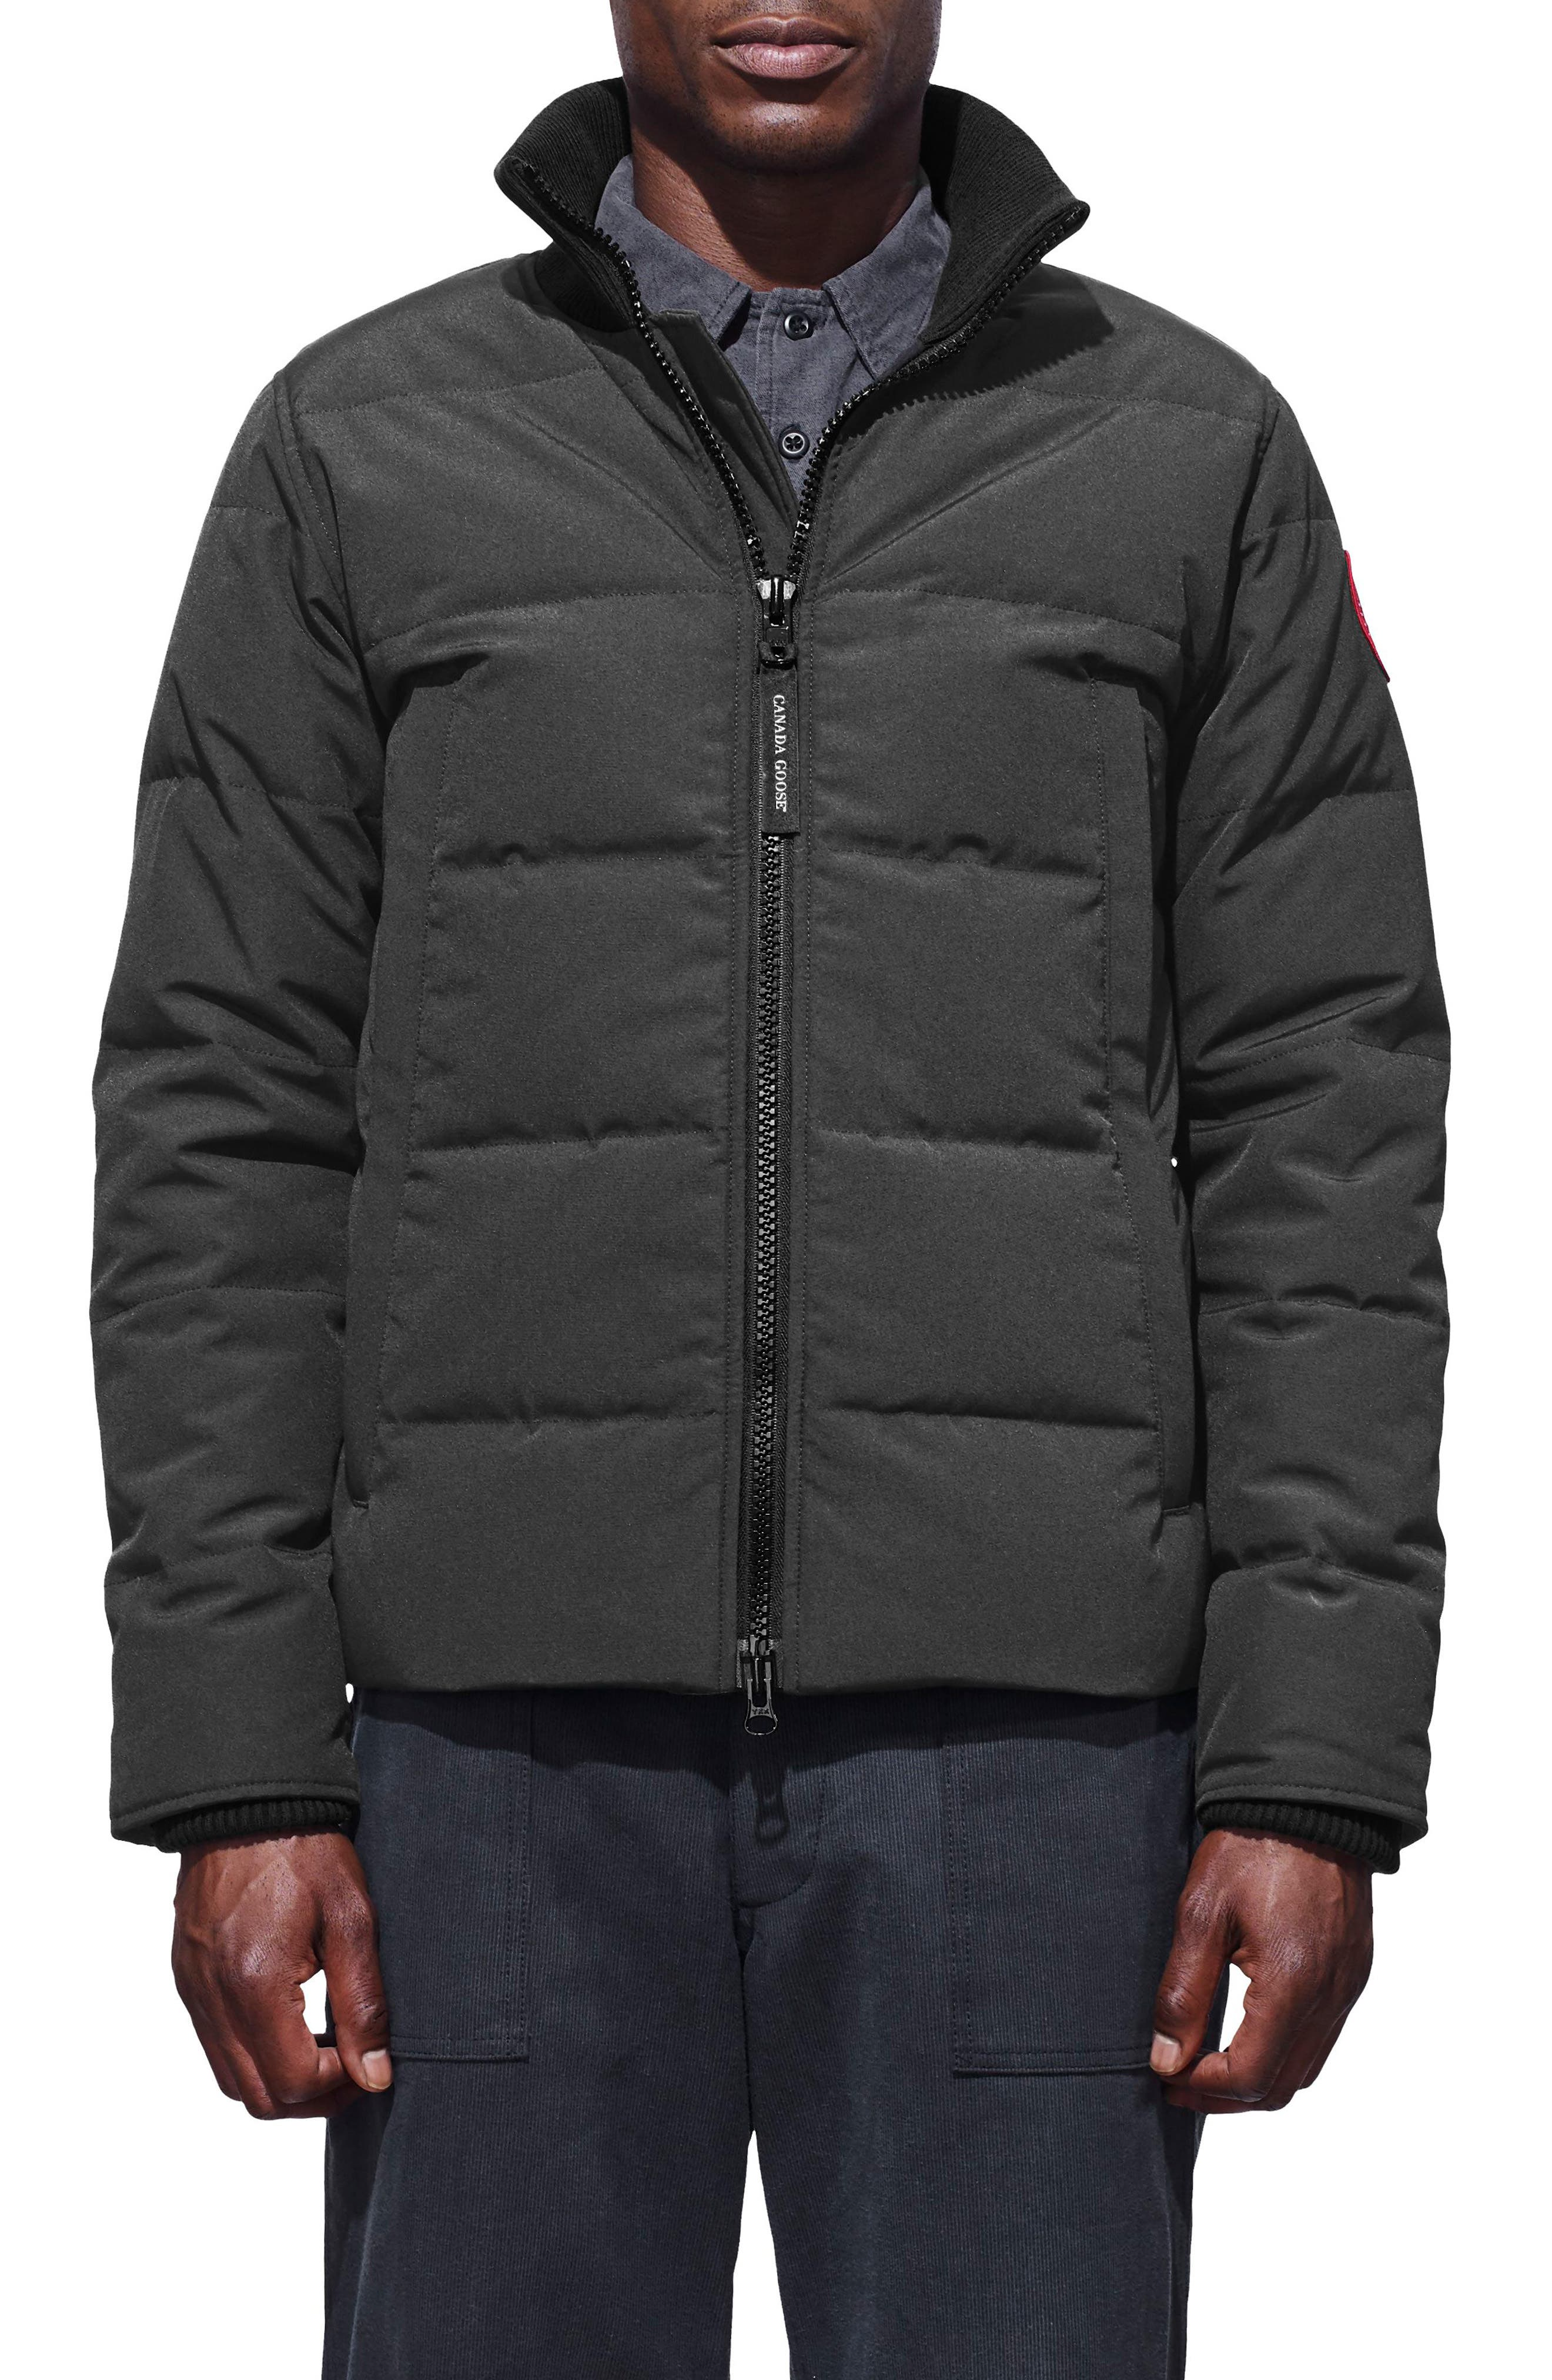 CANADA GOOSE 'Woolford' Slim Fit Down Bomber Jacket, Main, color, GRAPHITE